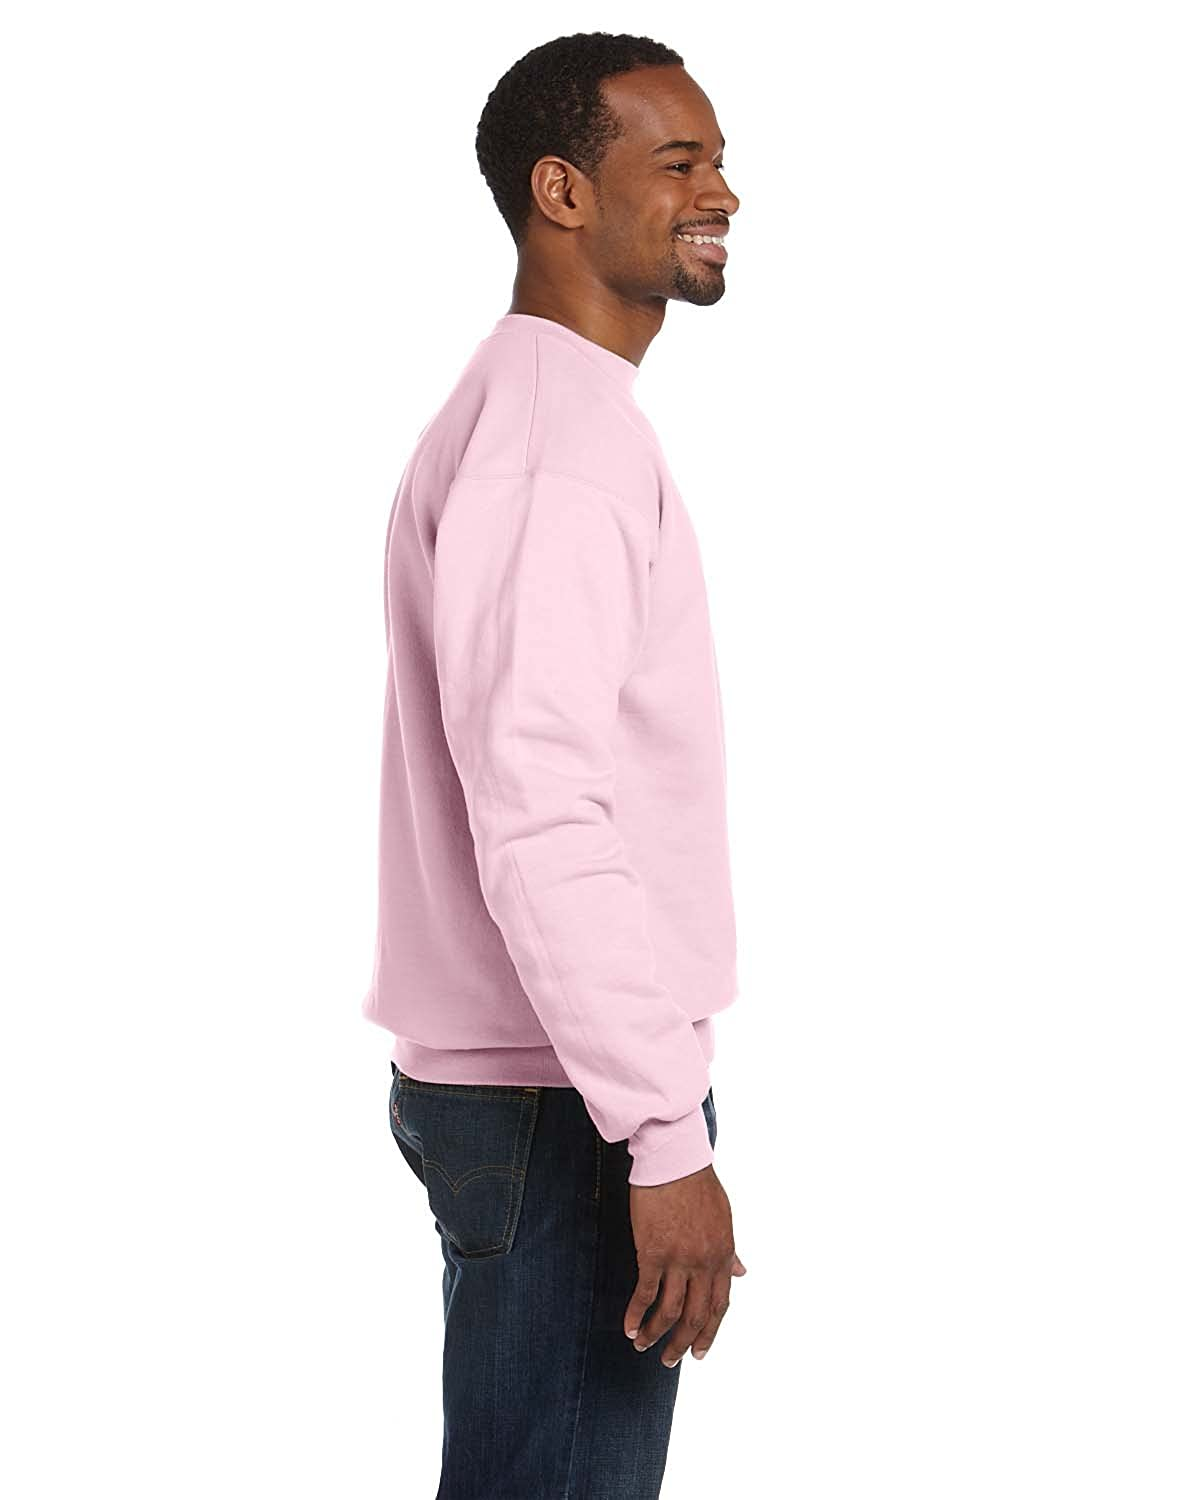 ca6e9d48 Now this medium weight 7.8-oz fleece sweatshirt is even better, because it  is made with up to 5% polyester created from recycled plastic.